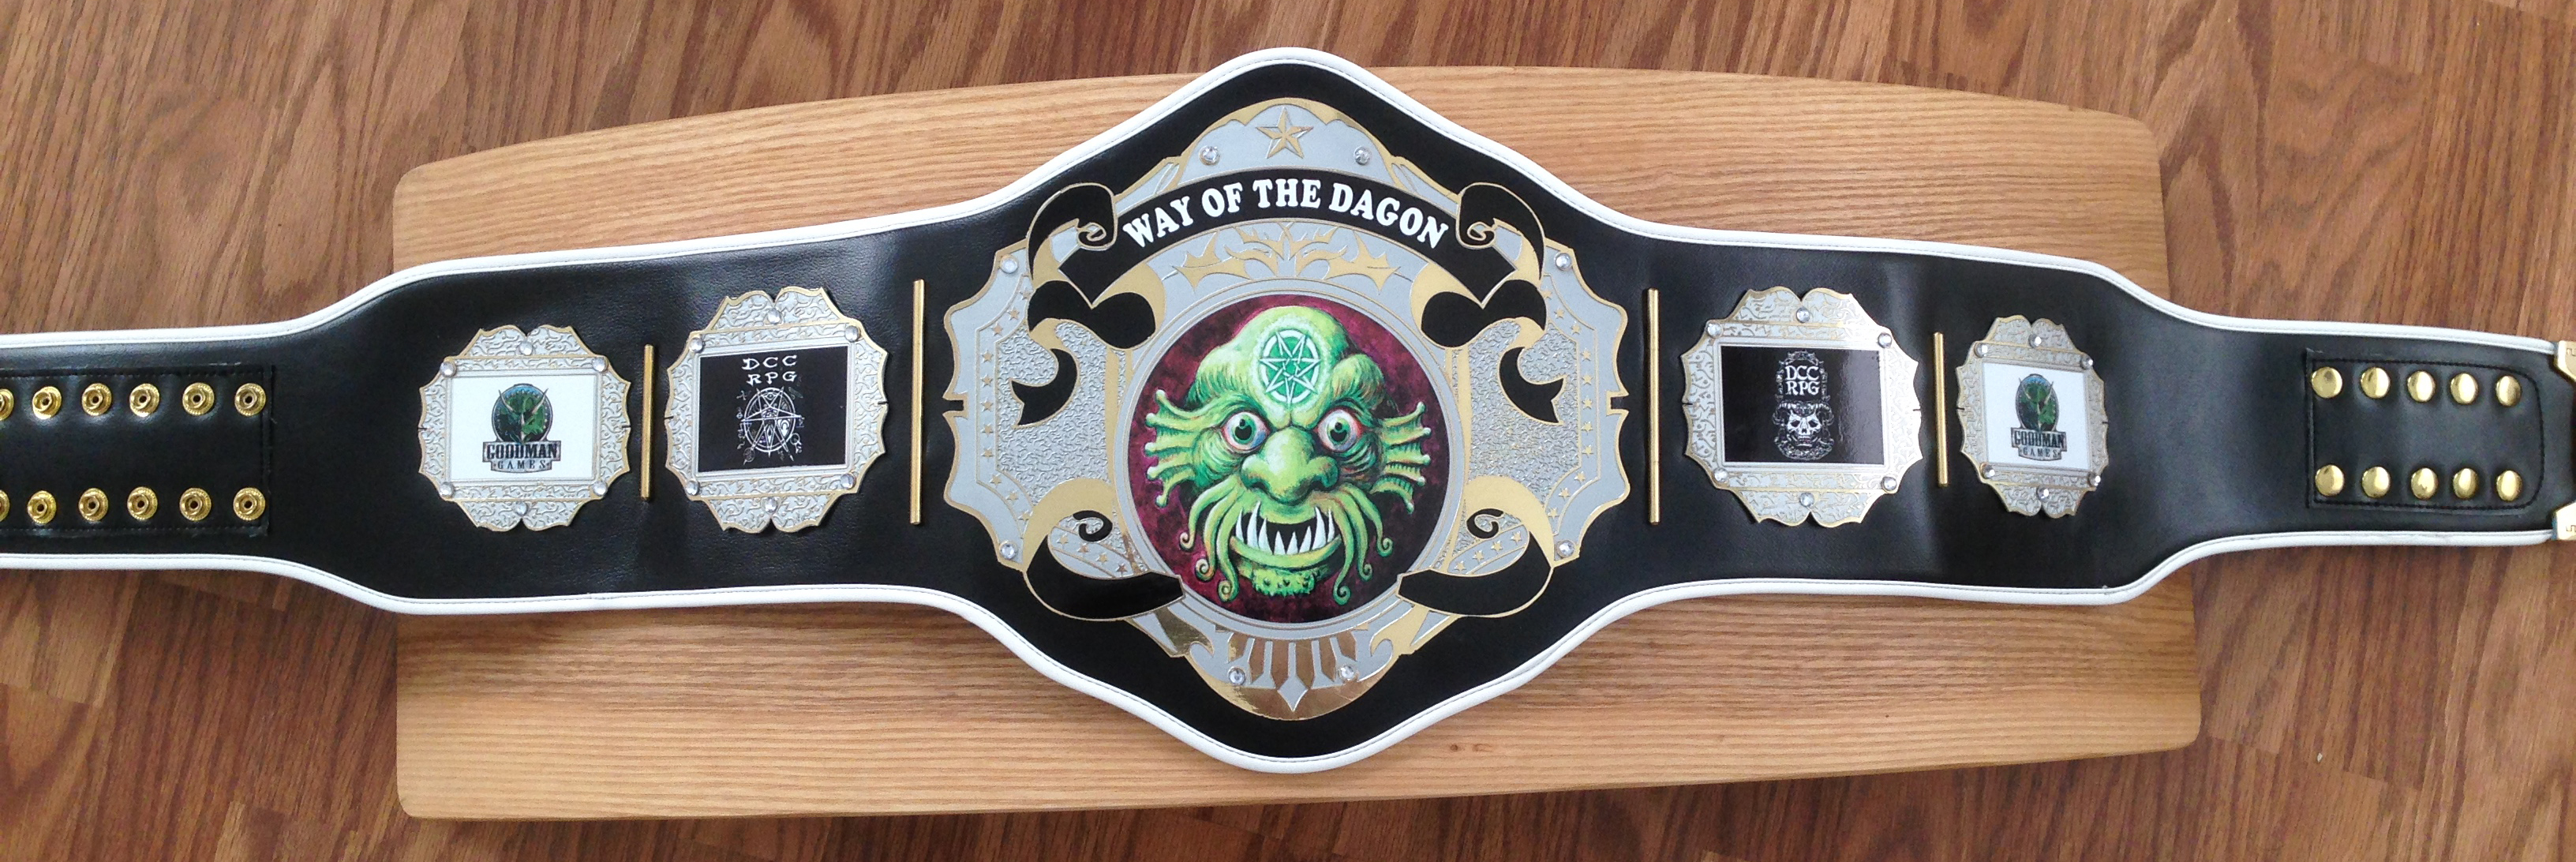 Way of the Dagon II                       belt